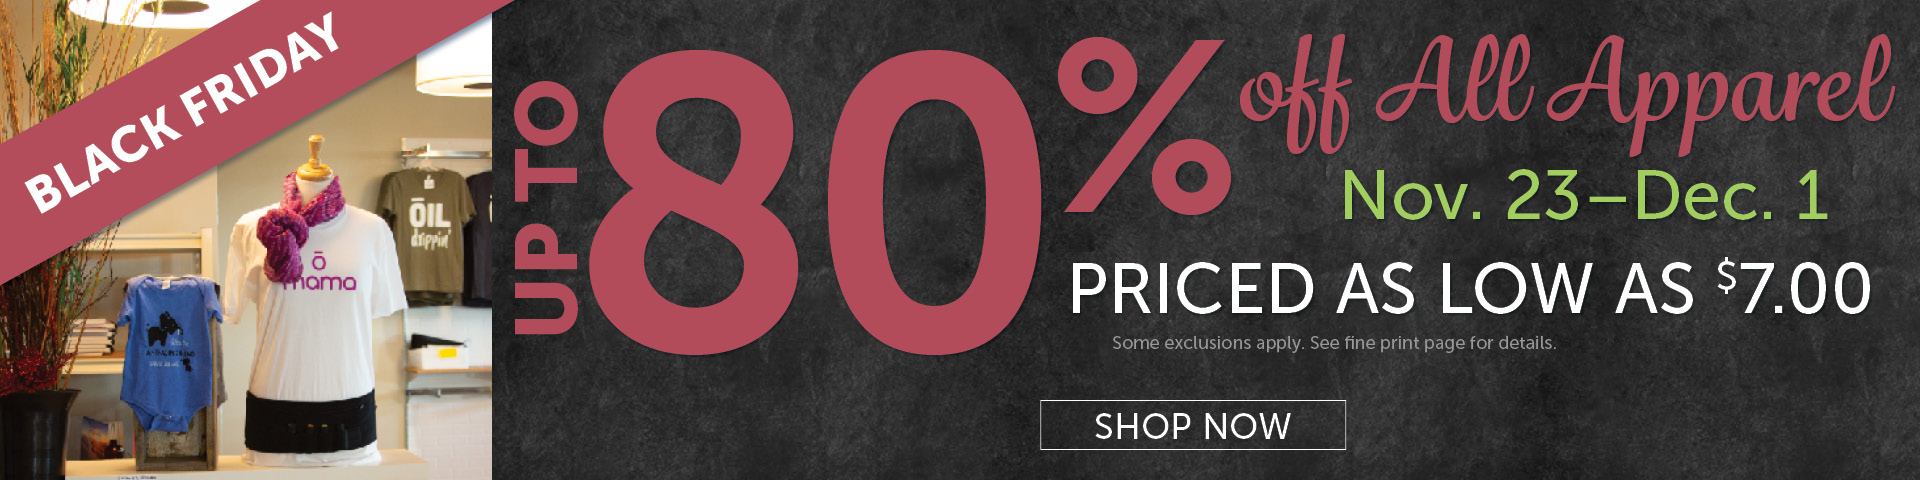 Up to 80% off ALL Apparel, priced as low as $7.00! November 23-December 1